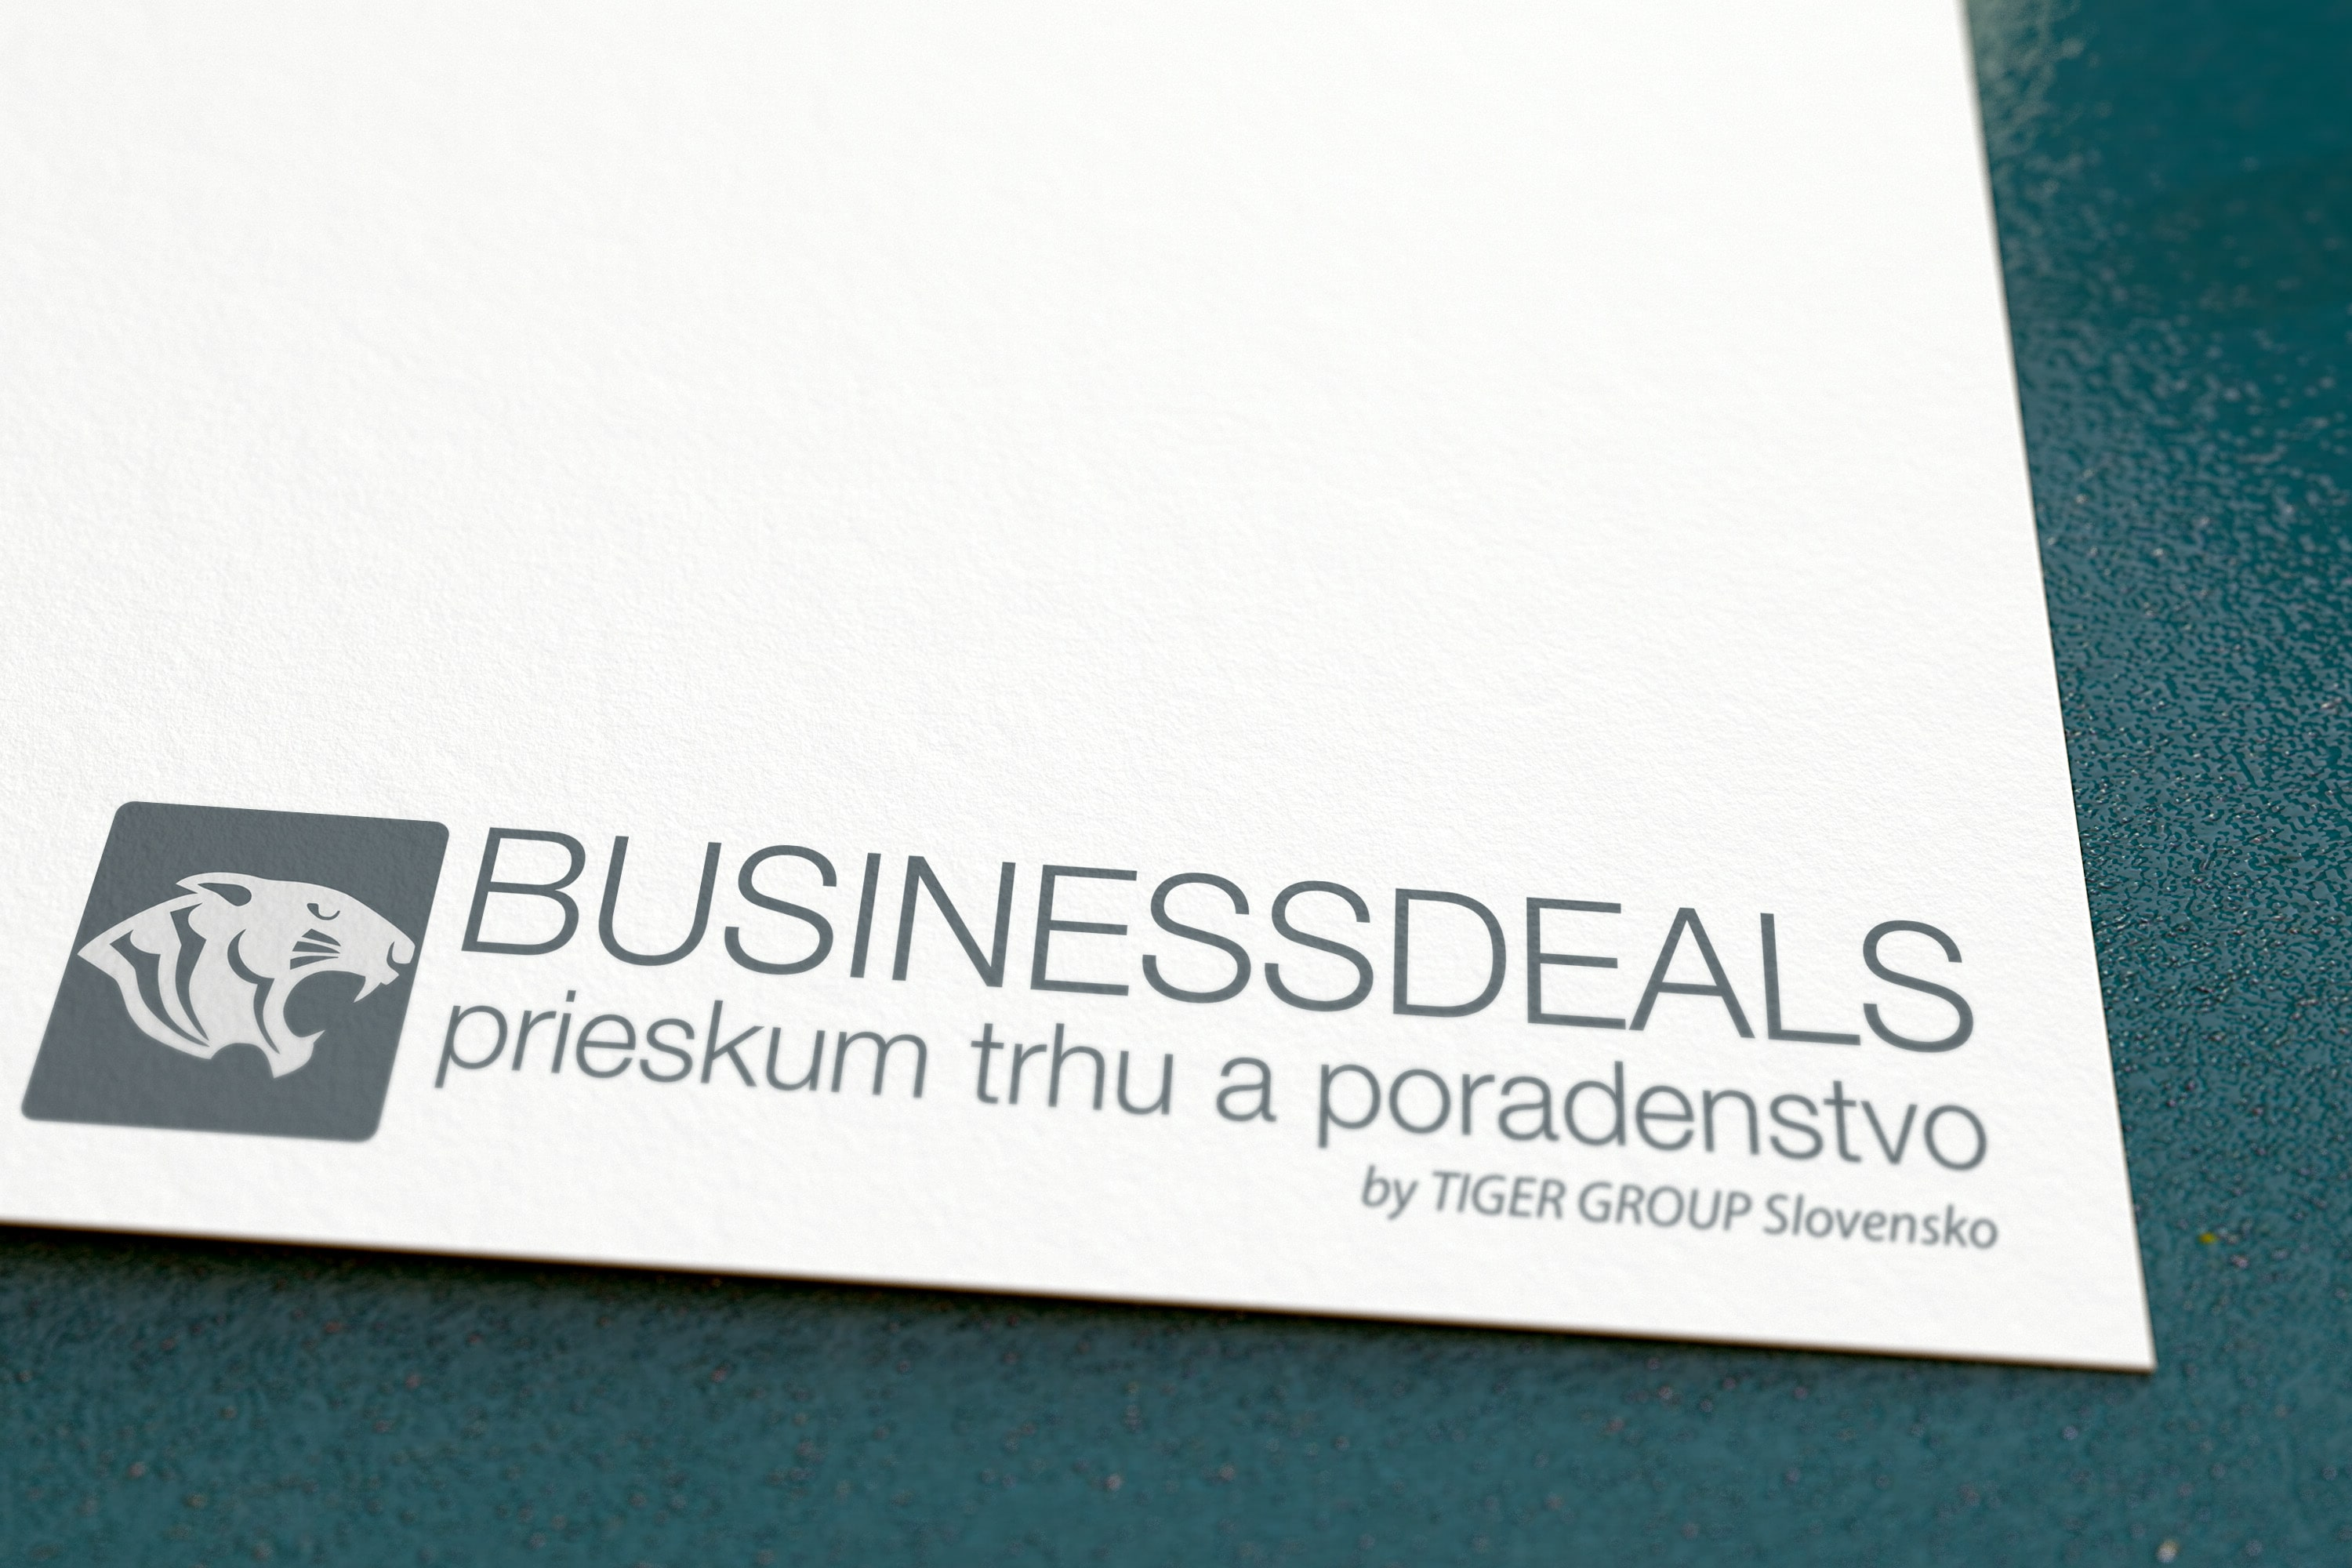 logo-businessdeals-min